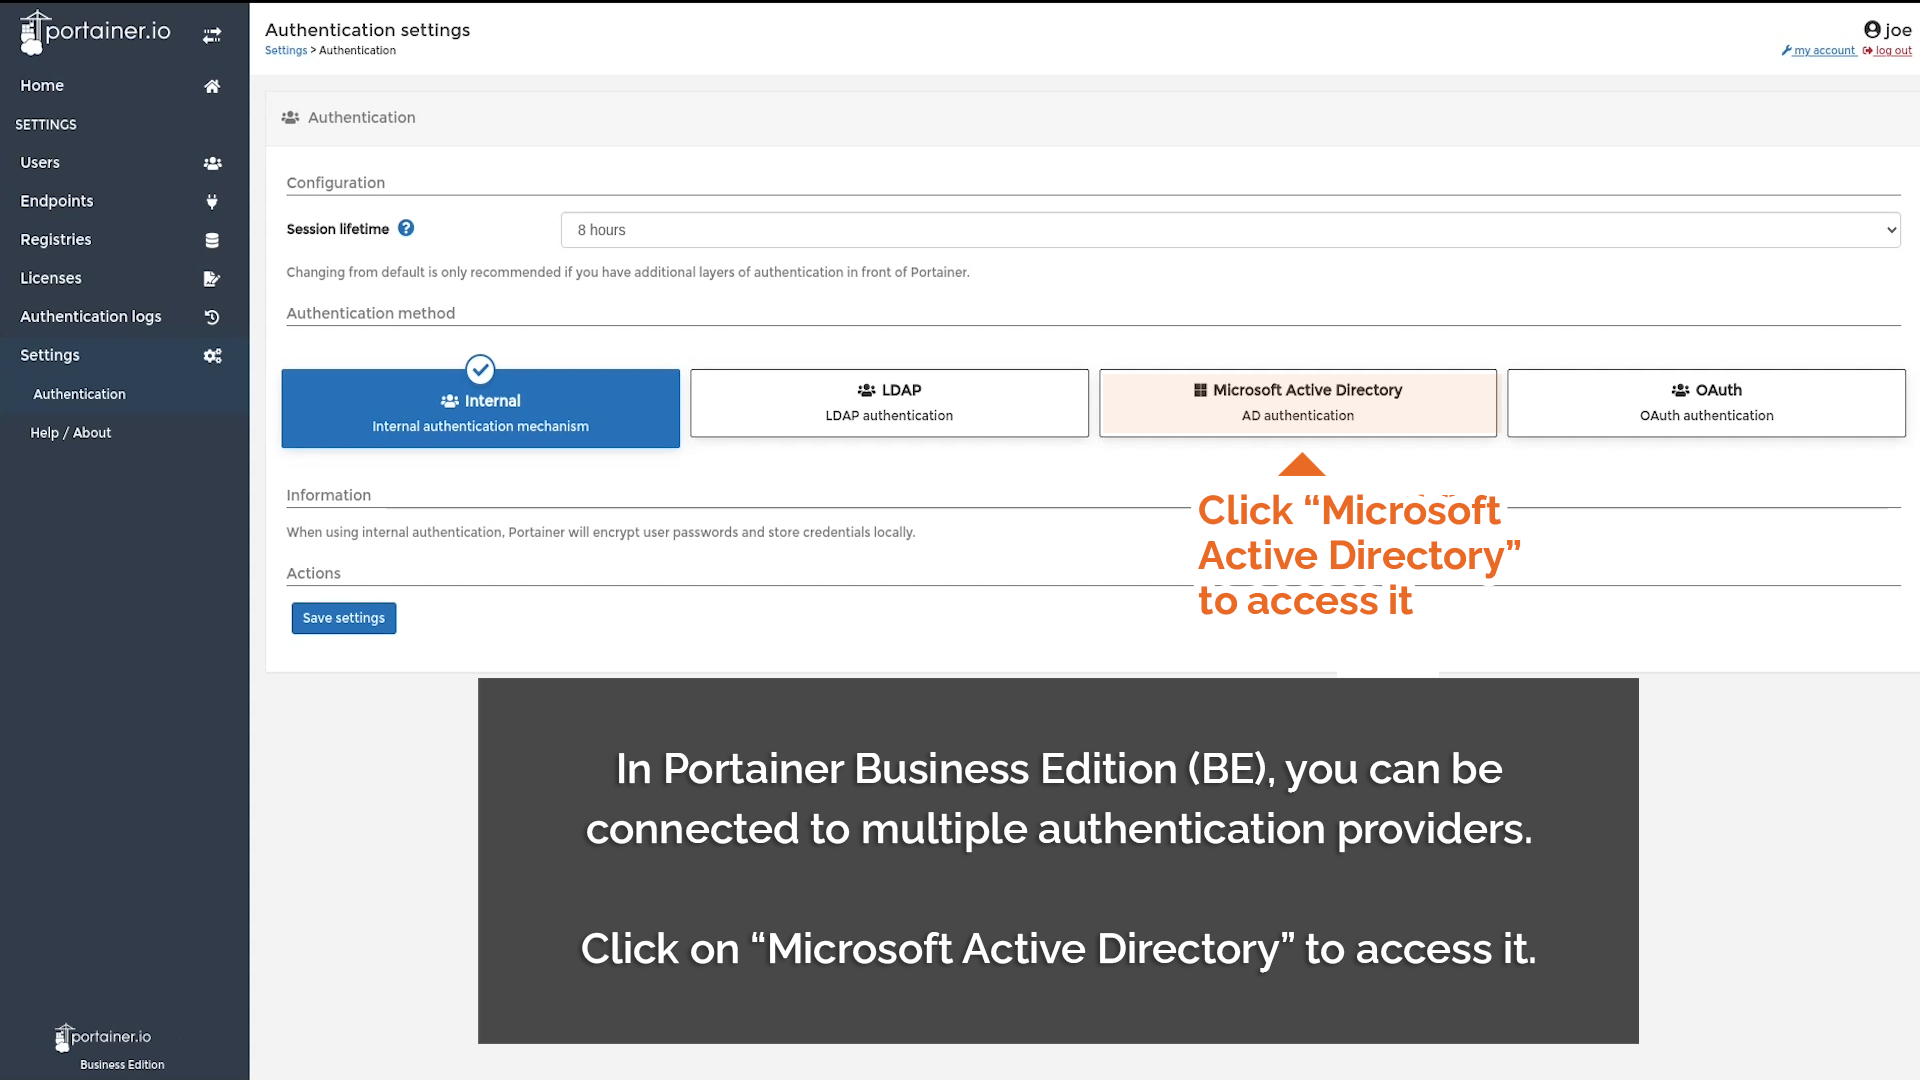 Click Microsoft Active Directory to connect